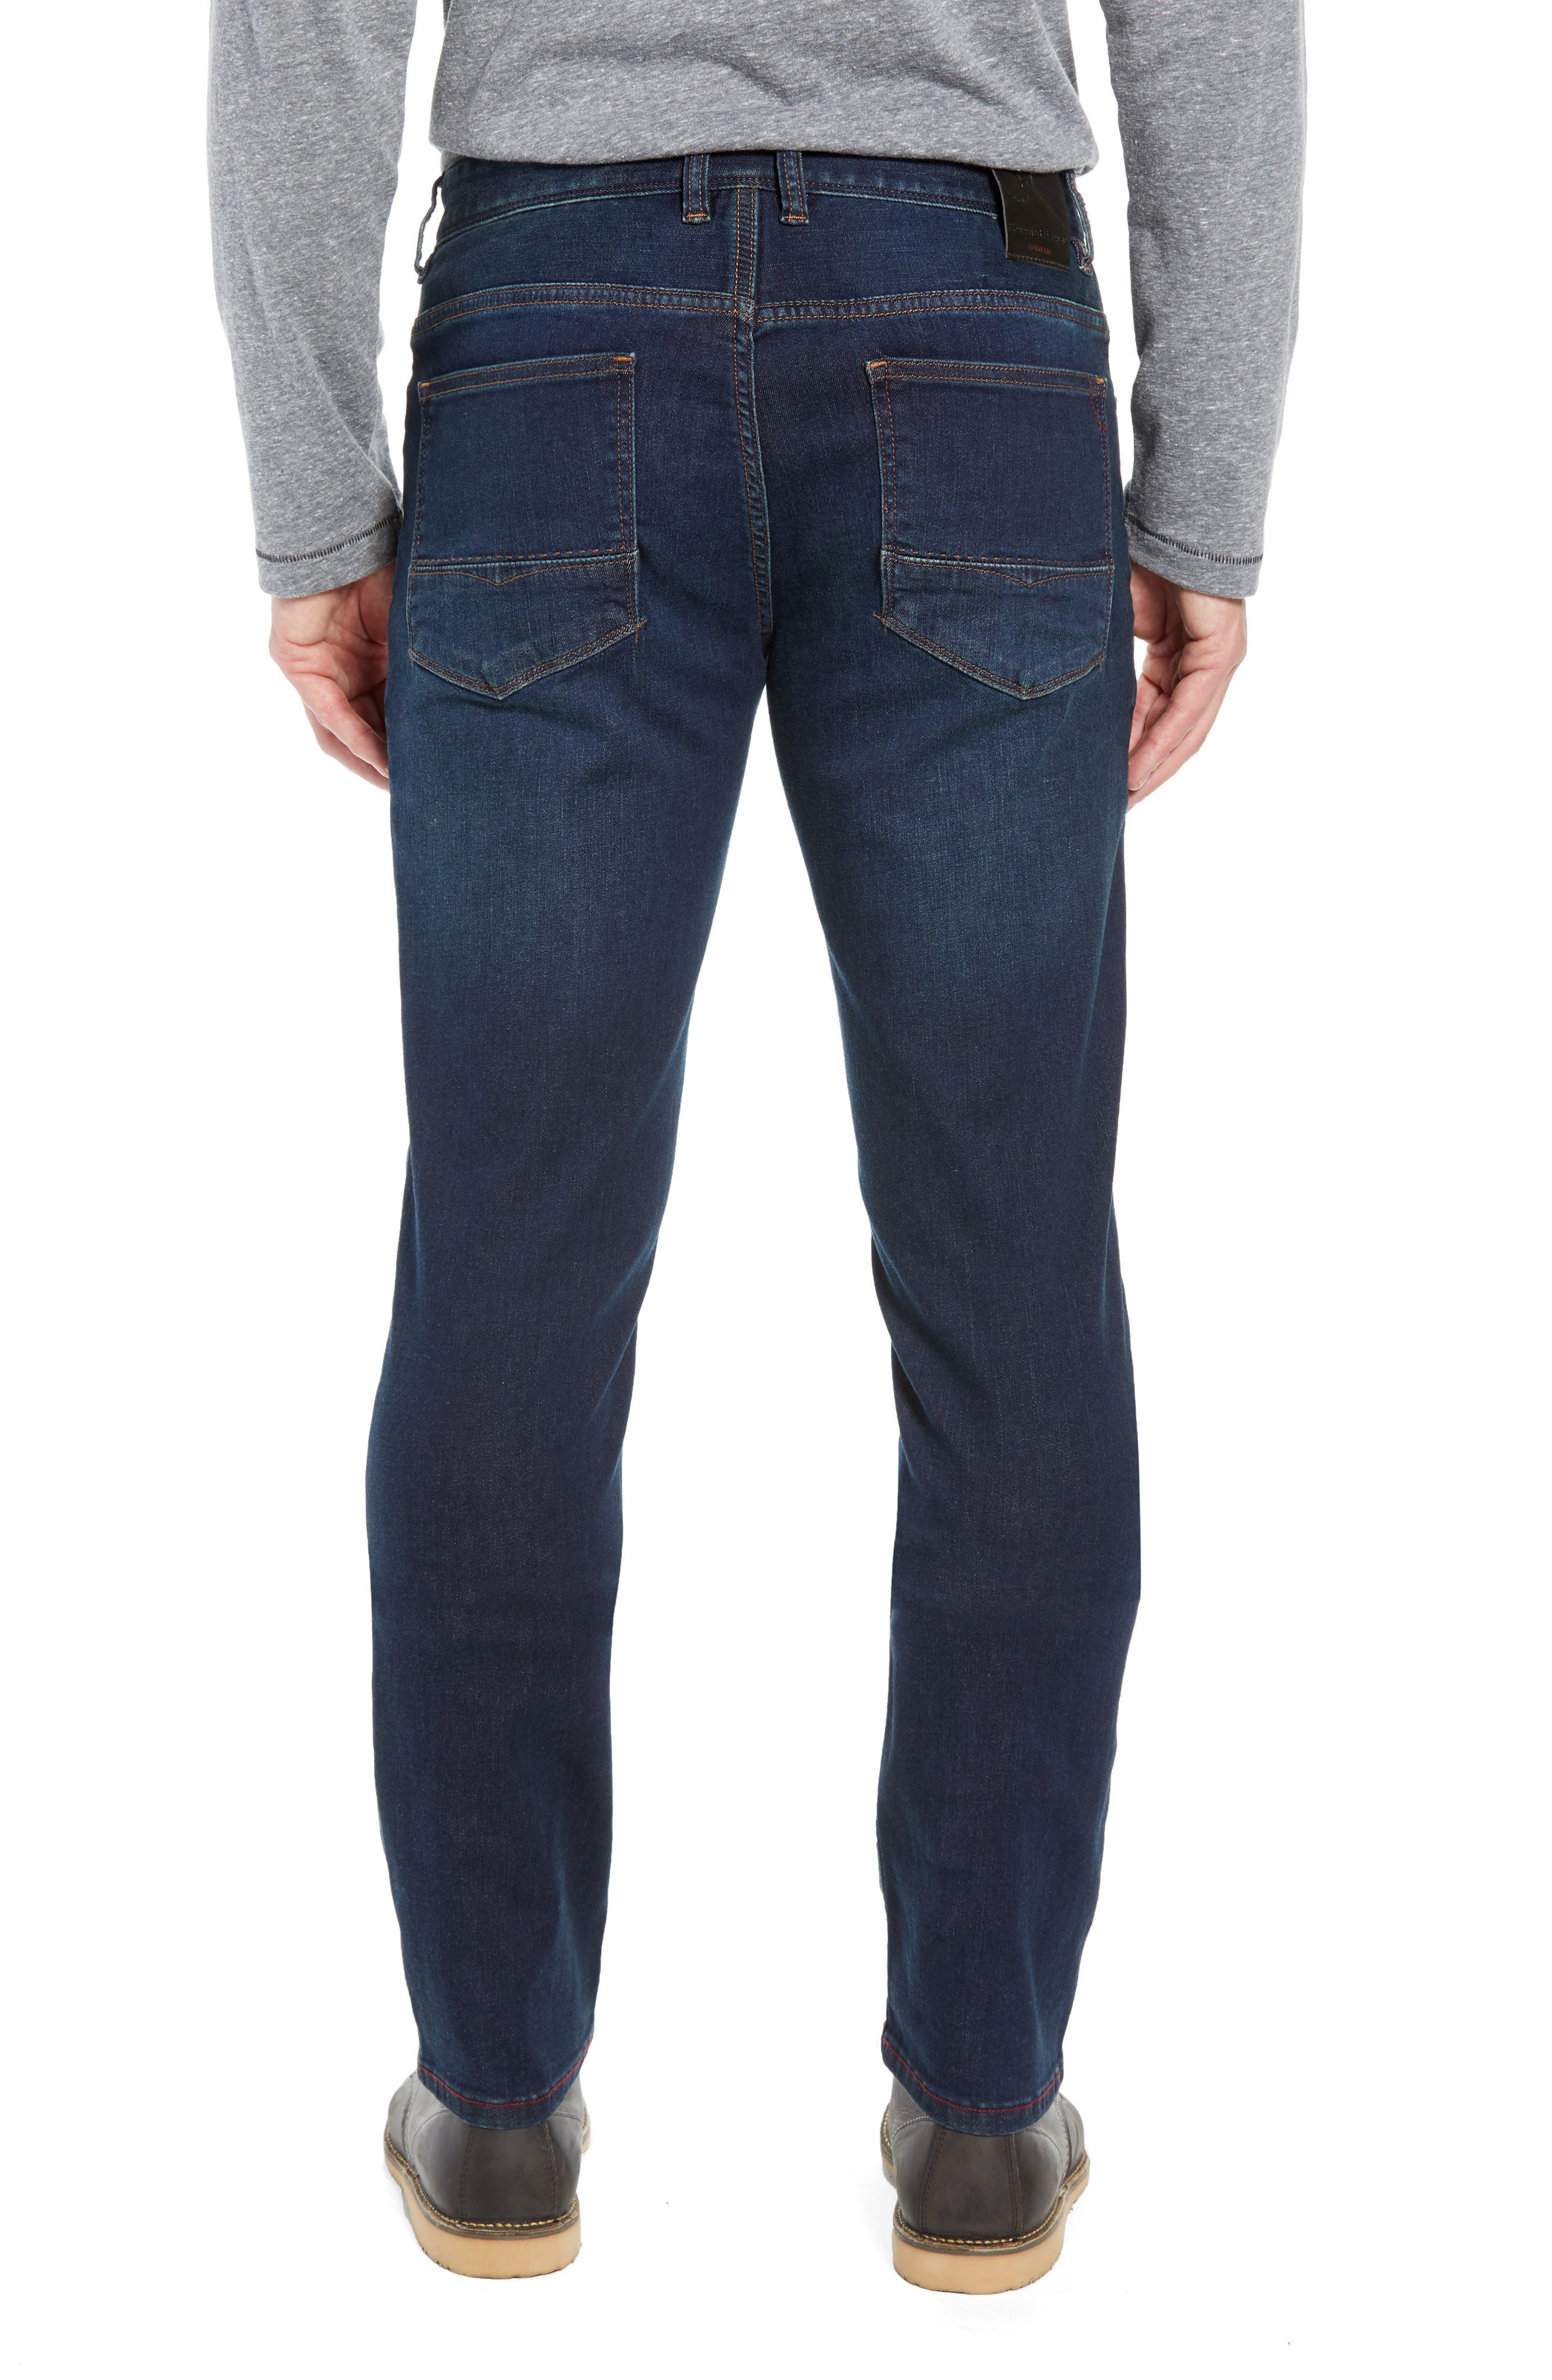 Costa Rica Vintage Regular Fit Jeans,                             Alternate thumbnail 2, color,                             RINSE WASH